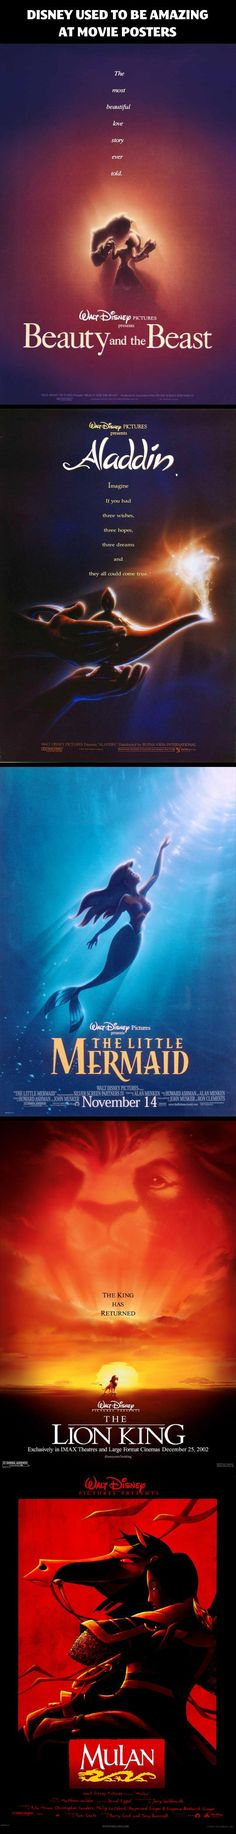 Disney's Old Movie Posters Were The Best